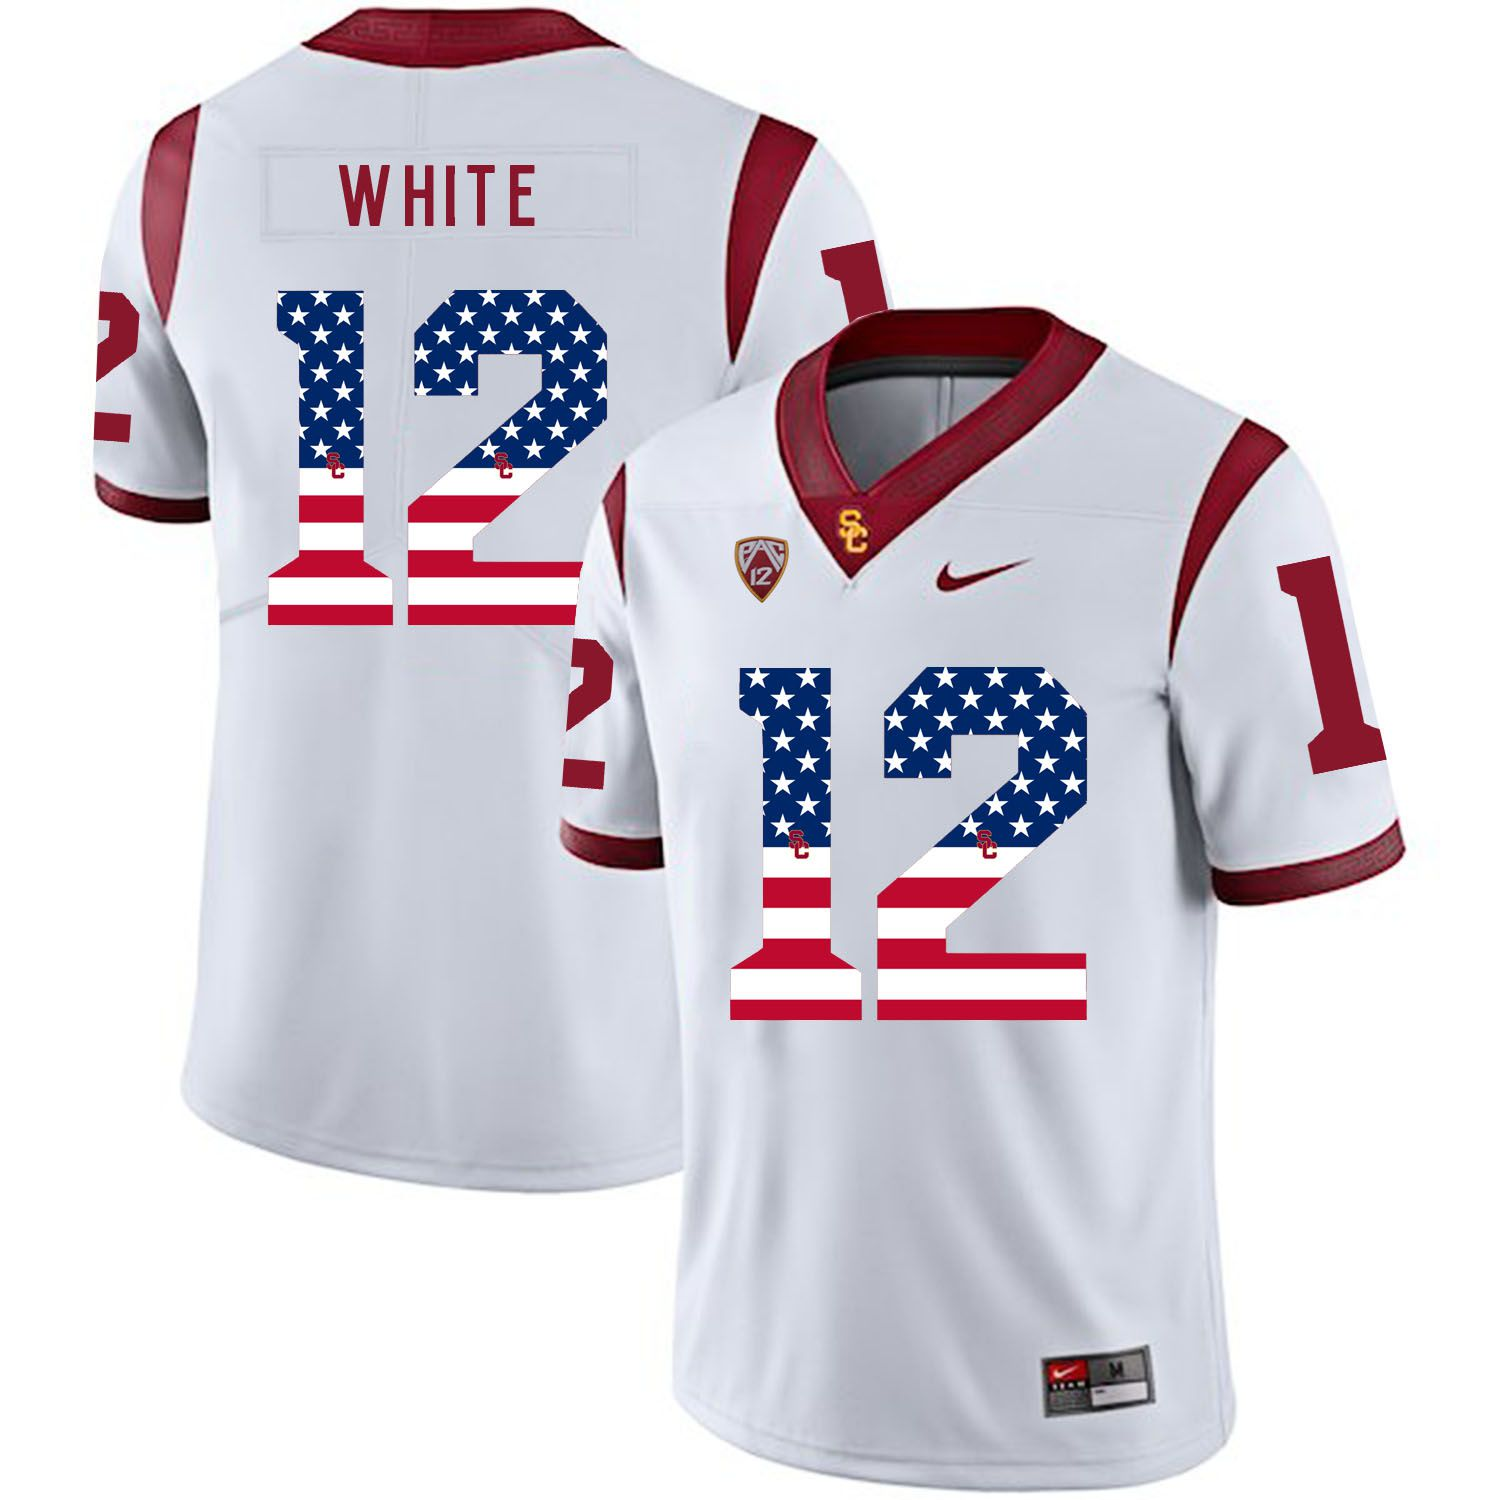 Men USC Trojans 12 White White Flag Customized NCAA Jerseys